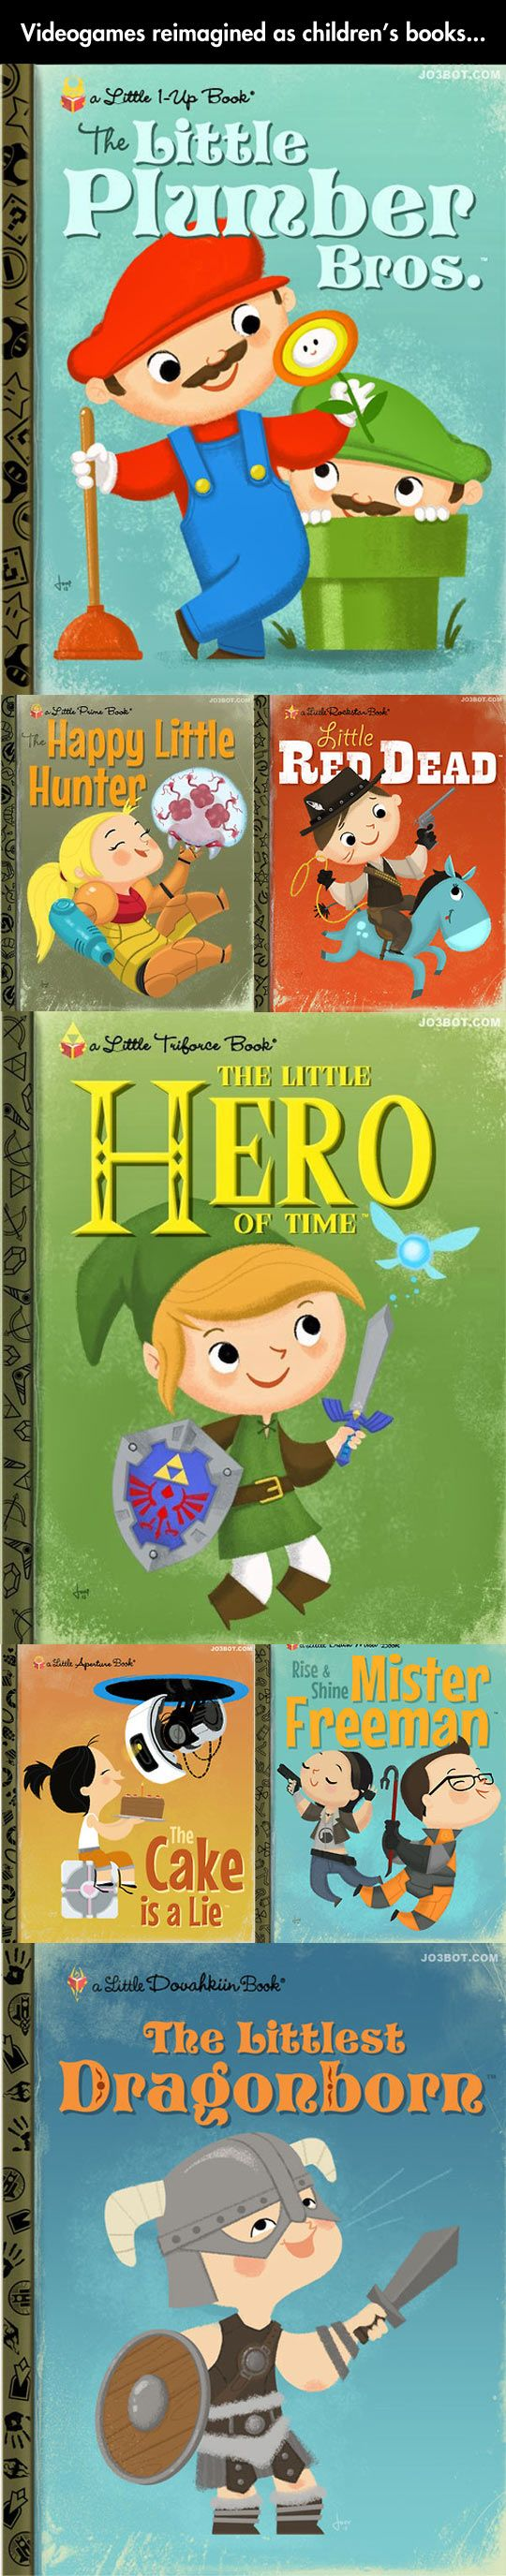 Video Games Reimagined as Classic Children's Books by Joey Spiotto...